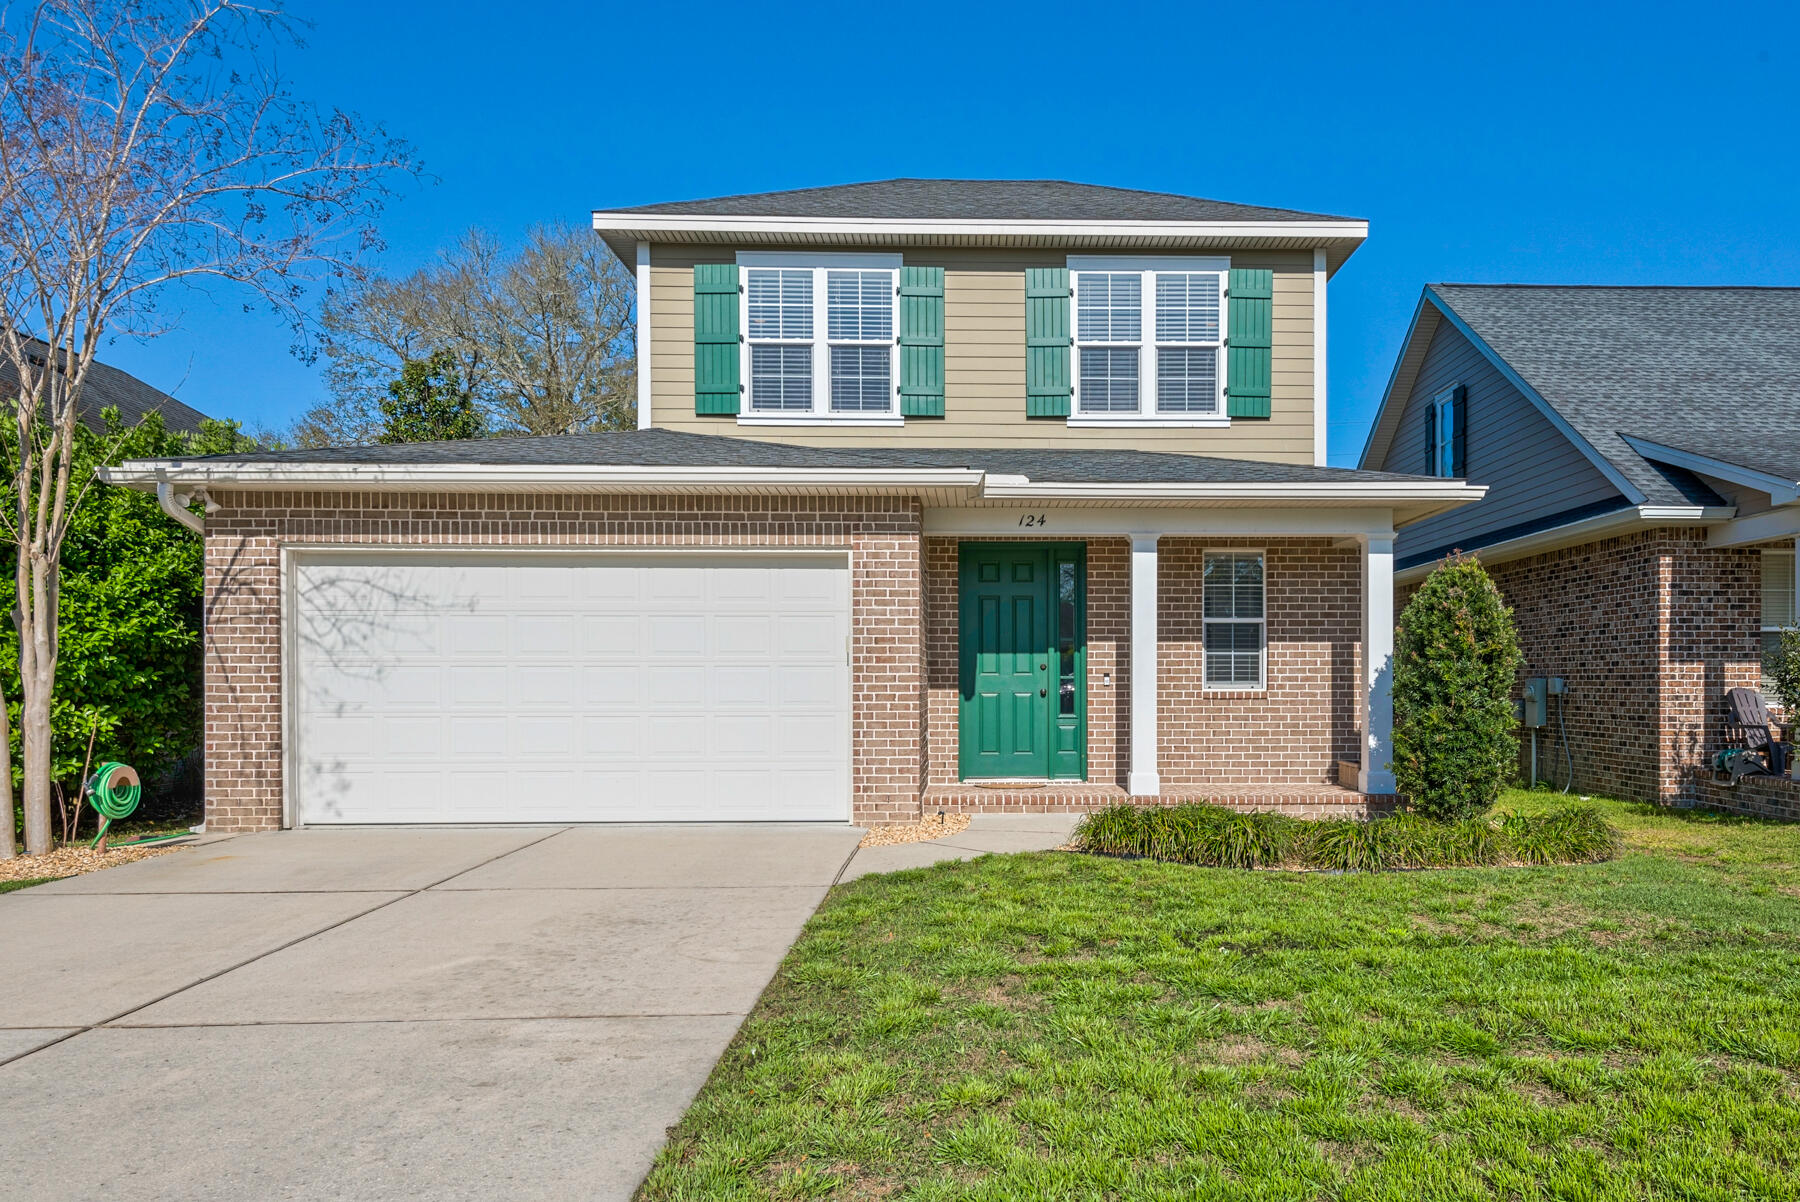 Photo of home for sale at 124 Arrowhead, Niceville FL